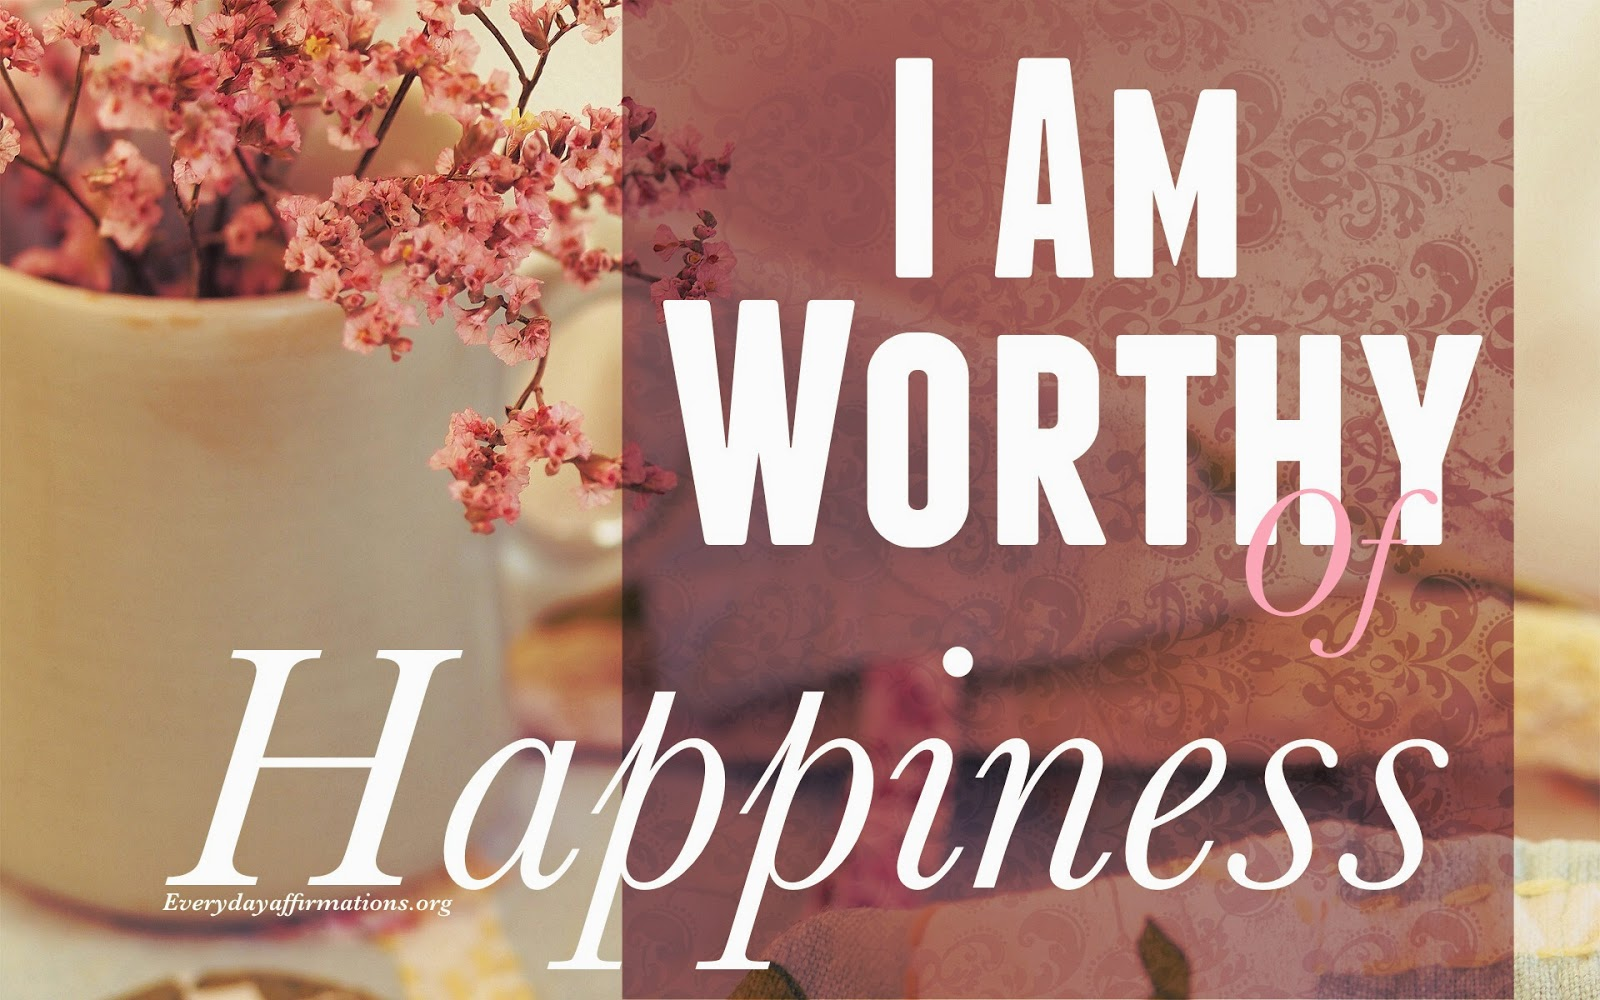 weekly positive affirmations wallpaper